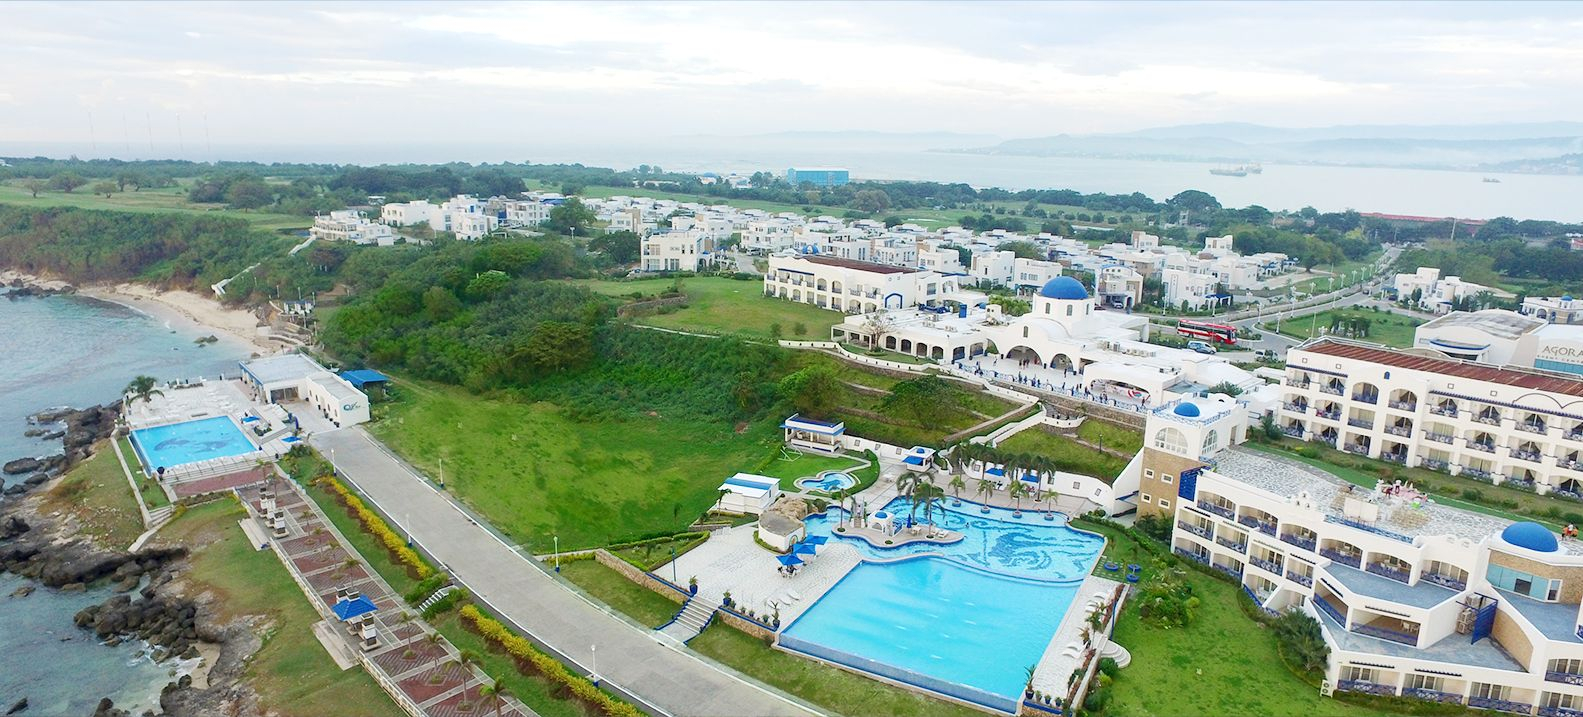 Thunderbird Resorts  Casinos  Poro Point Review Our